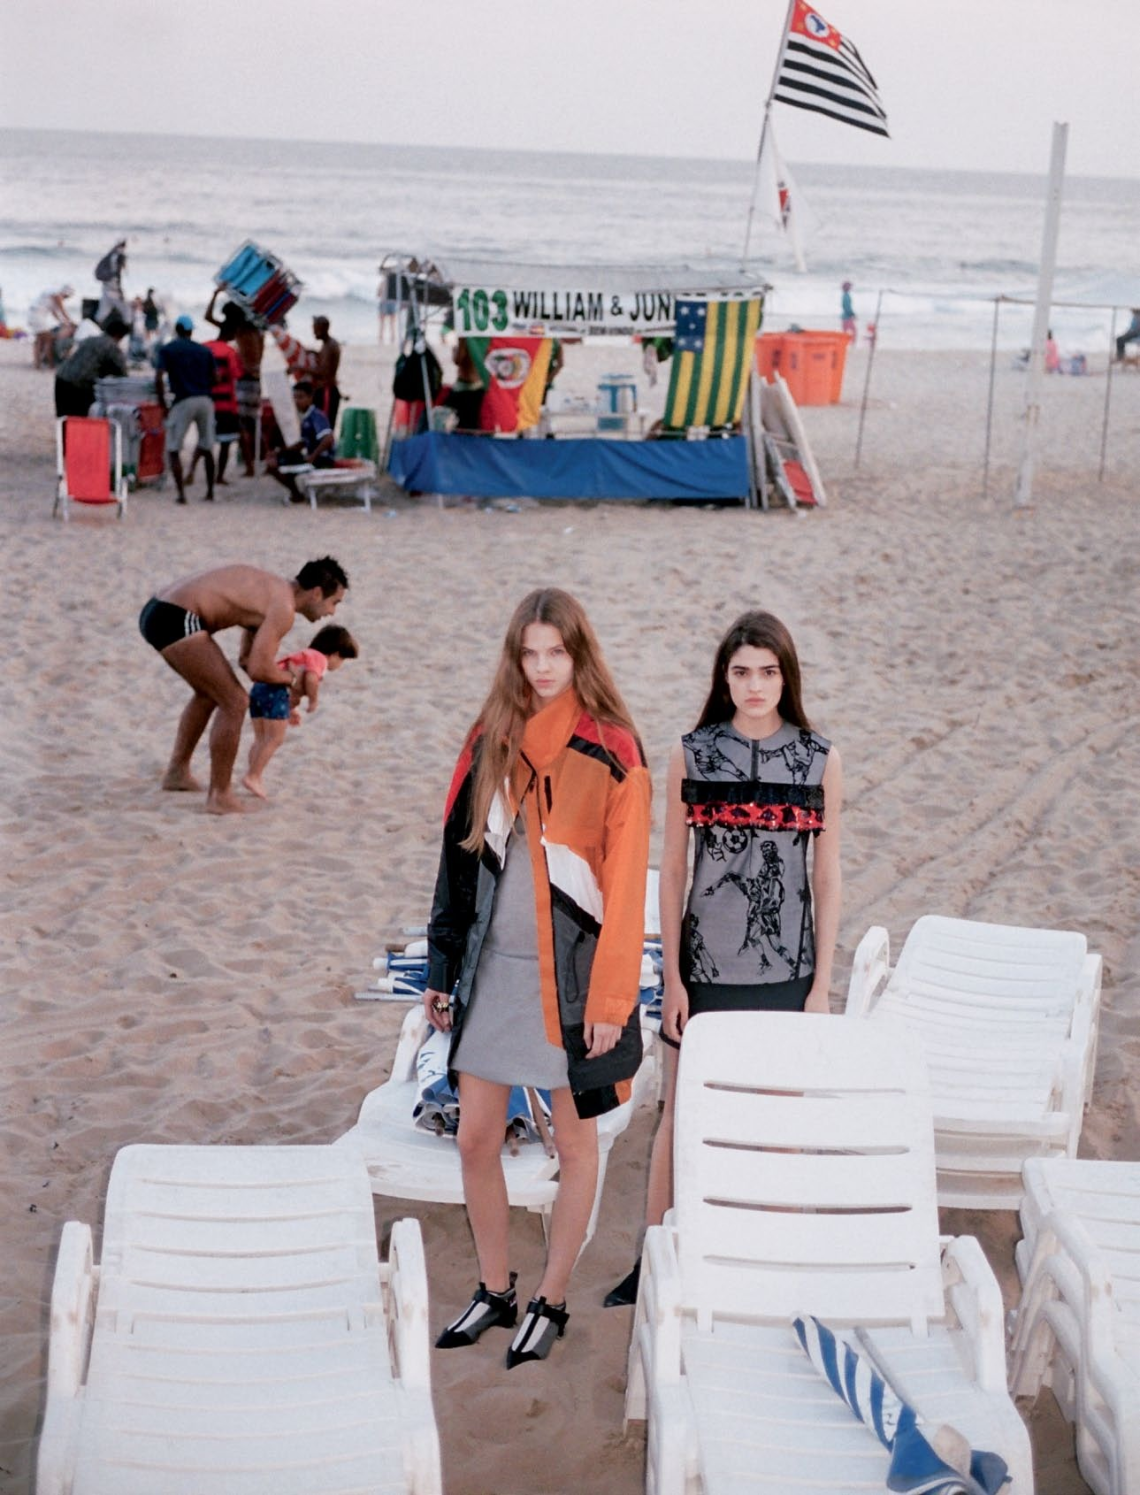 Julia Merkelbach (left) and Alexandra Micu (right) stand out in urban silhouettes on the beach